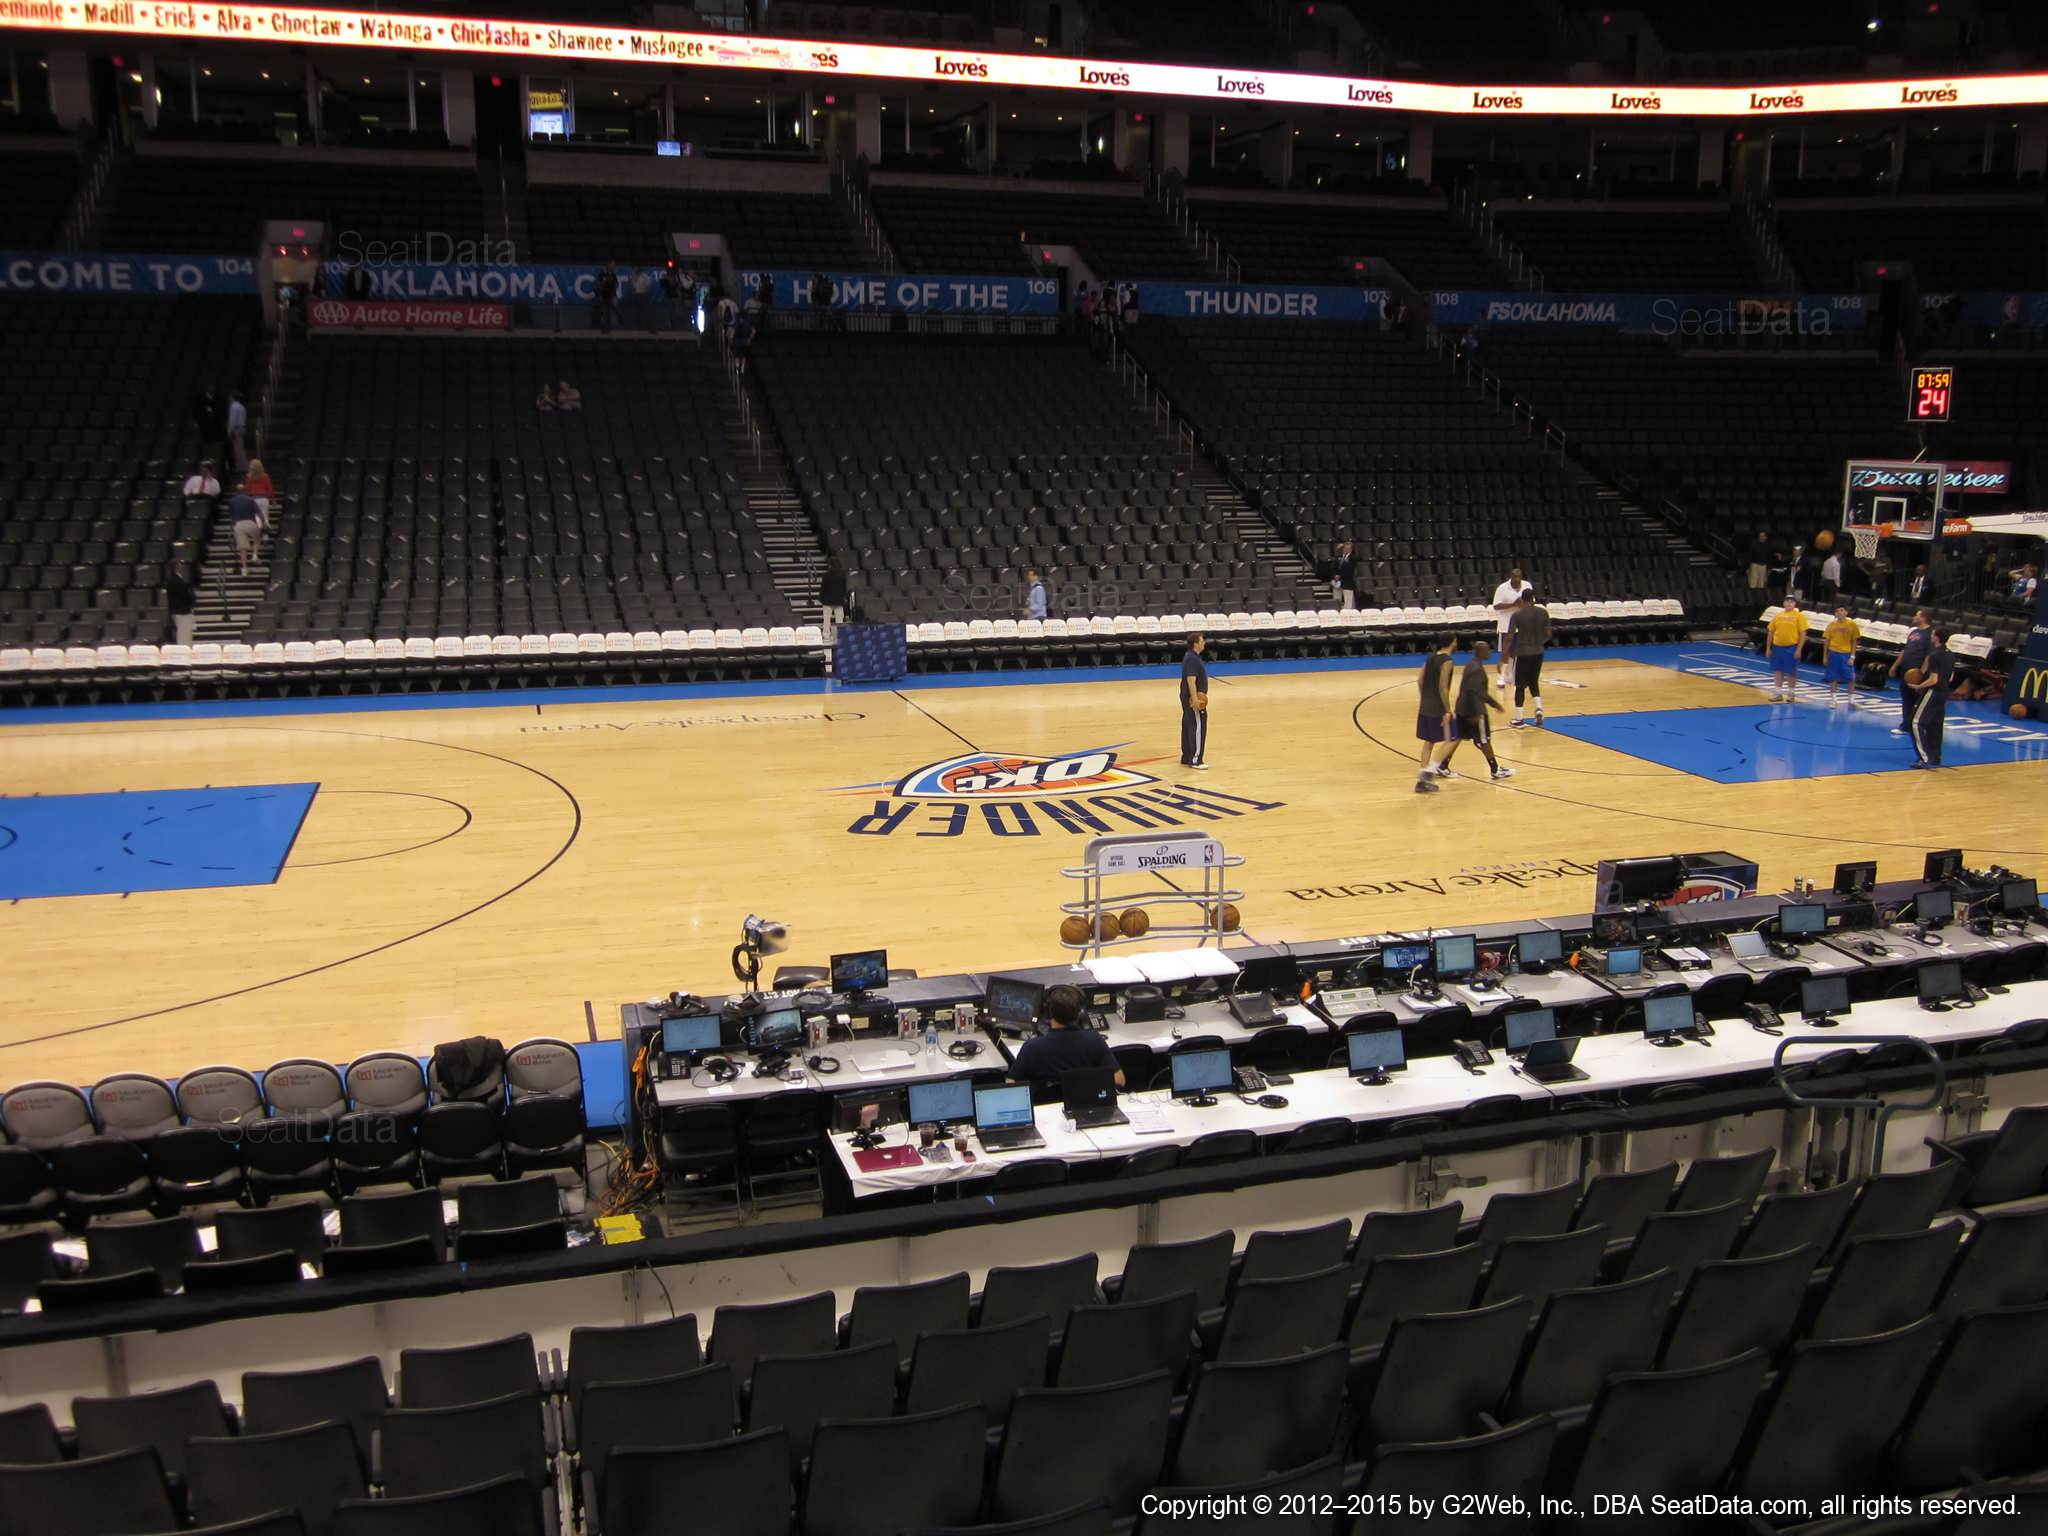 Seat view from section 116 at Chesapeake Energy Arena, home of the Oklahoma City Thunder